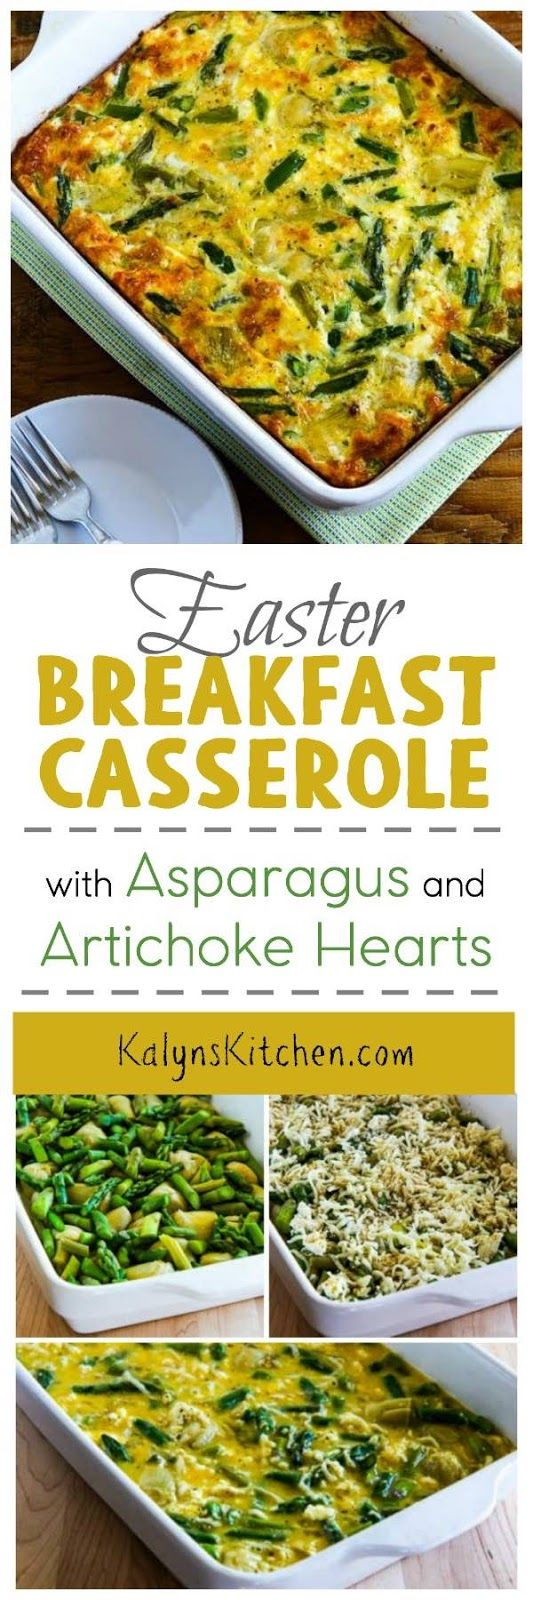 This Easter Breakfast Casserole with Asparagus and Artichoke Hearts is perfect for a brunch that's healthy but uses special ingredients. And this delicious breakfast is low-carb, Keto, low-glycemic, gluten-free, and South Beach Diet friendly. [found on KalynsKitchen.com] #BreakfastCasserole  #EasterBreakfastCasserole #BreakfastCasseroleAsparagus #BreakfastCasseroleArtichokeHearts